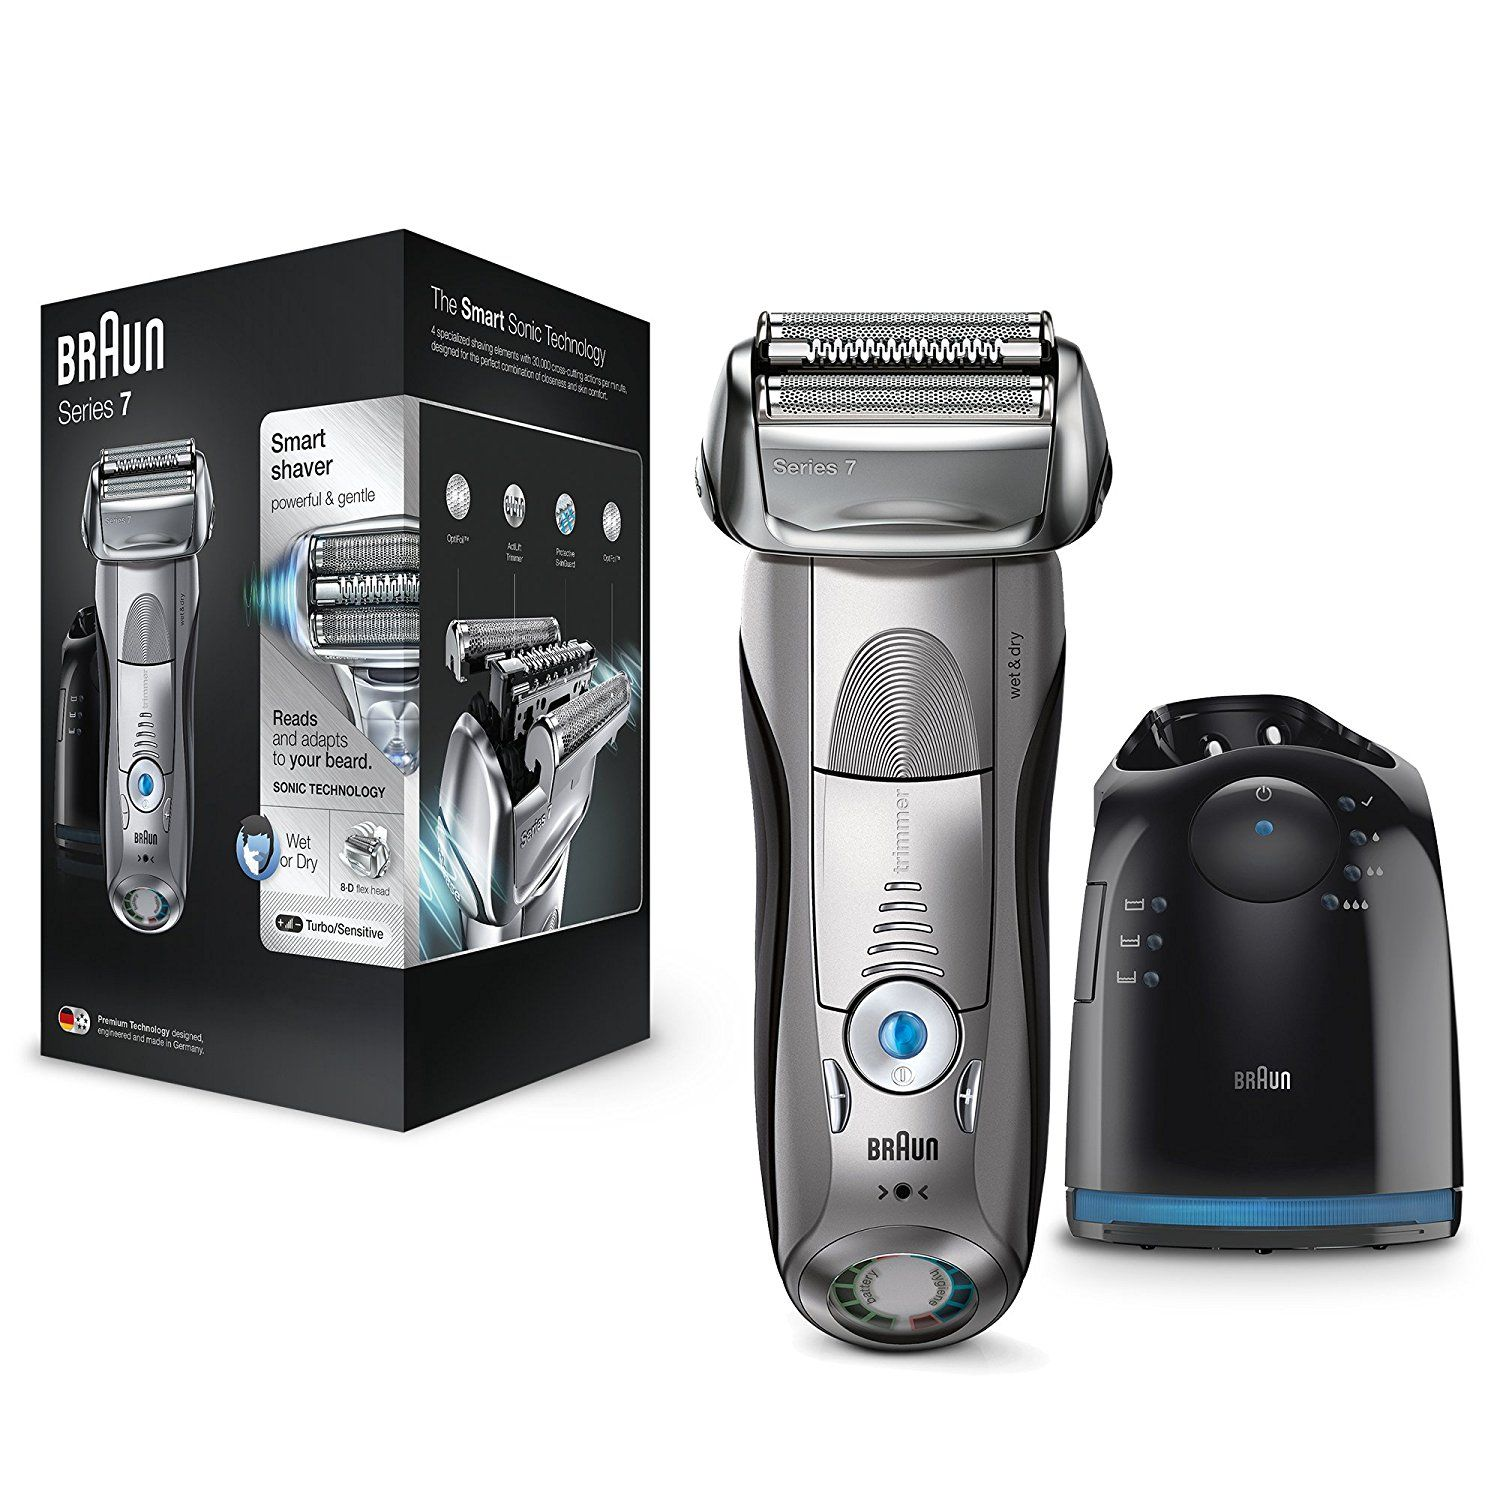 Braun Series 7 Comparison What Are The Differences Braun Shaver Best Electric Shaver Foil Shaver